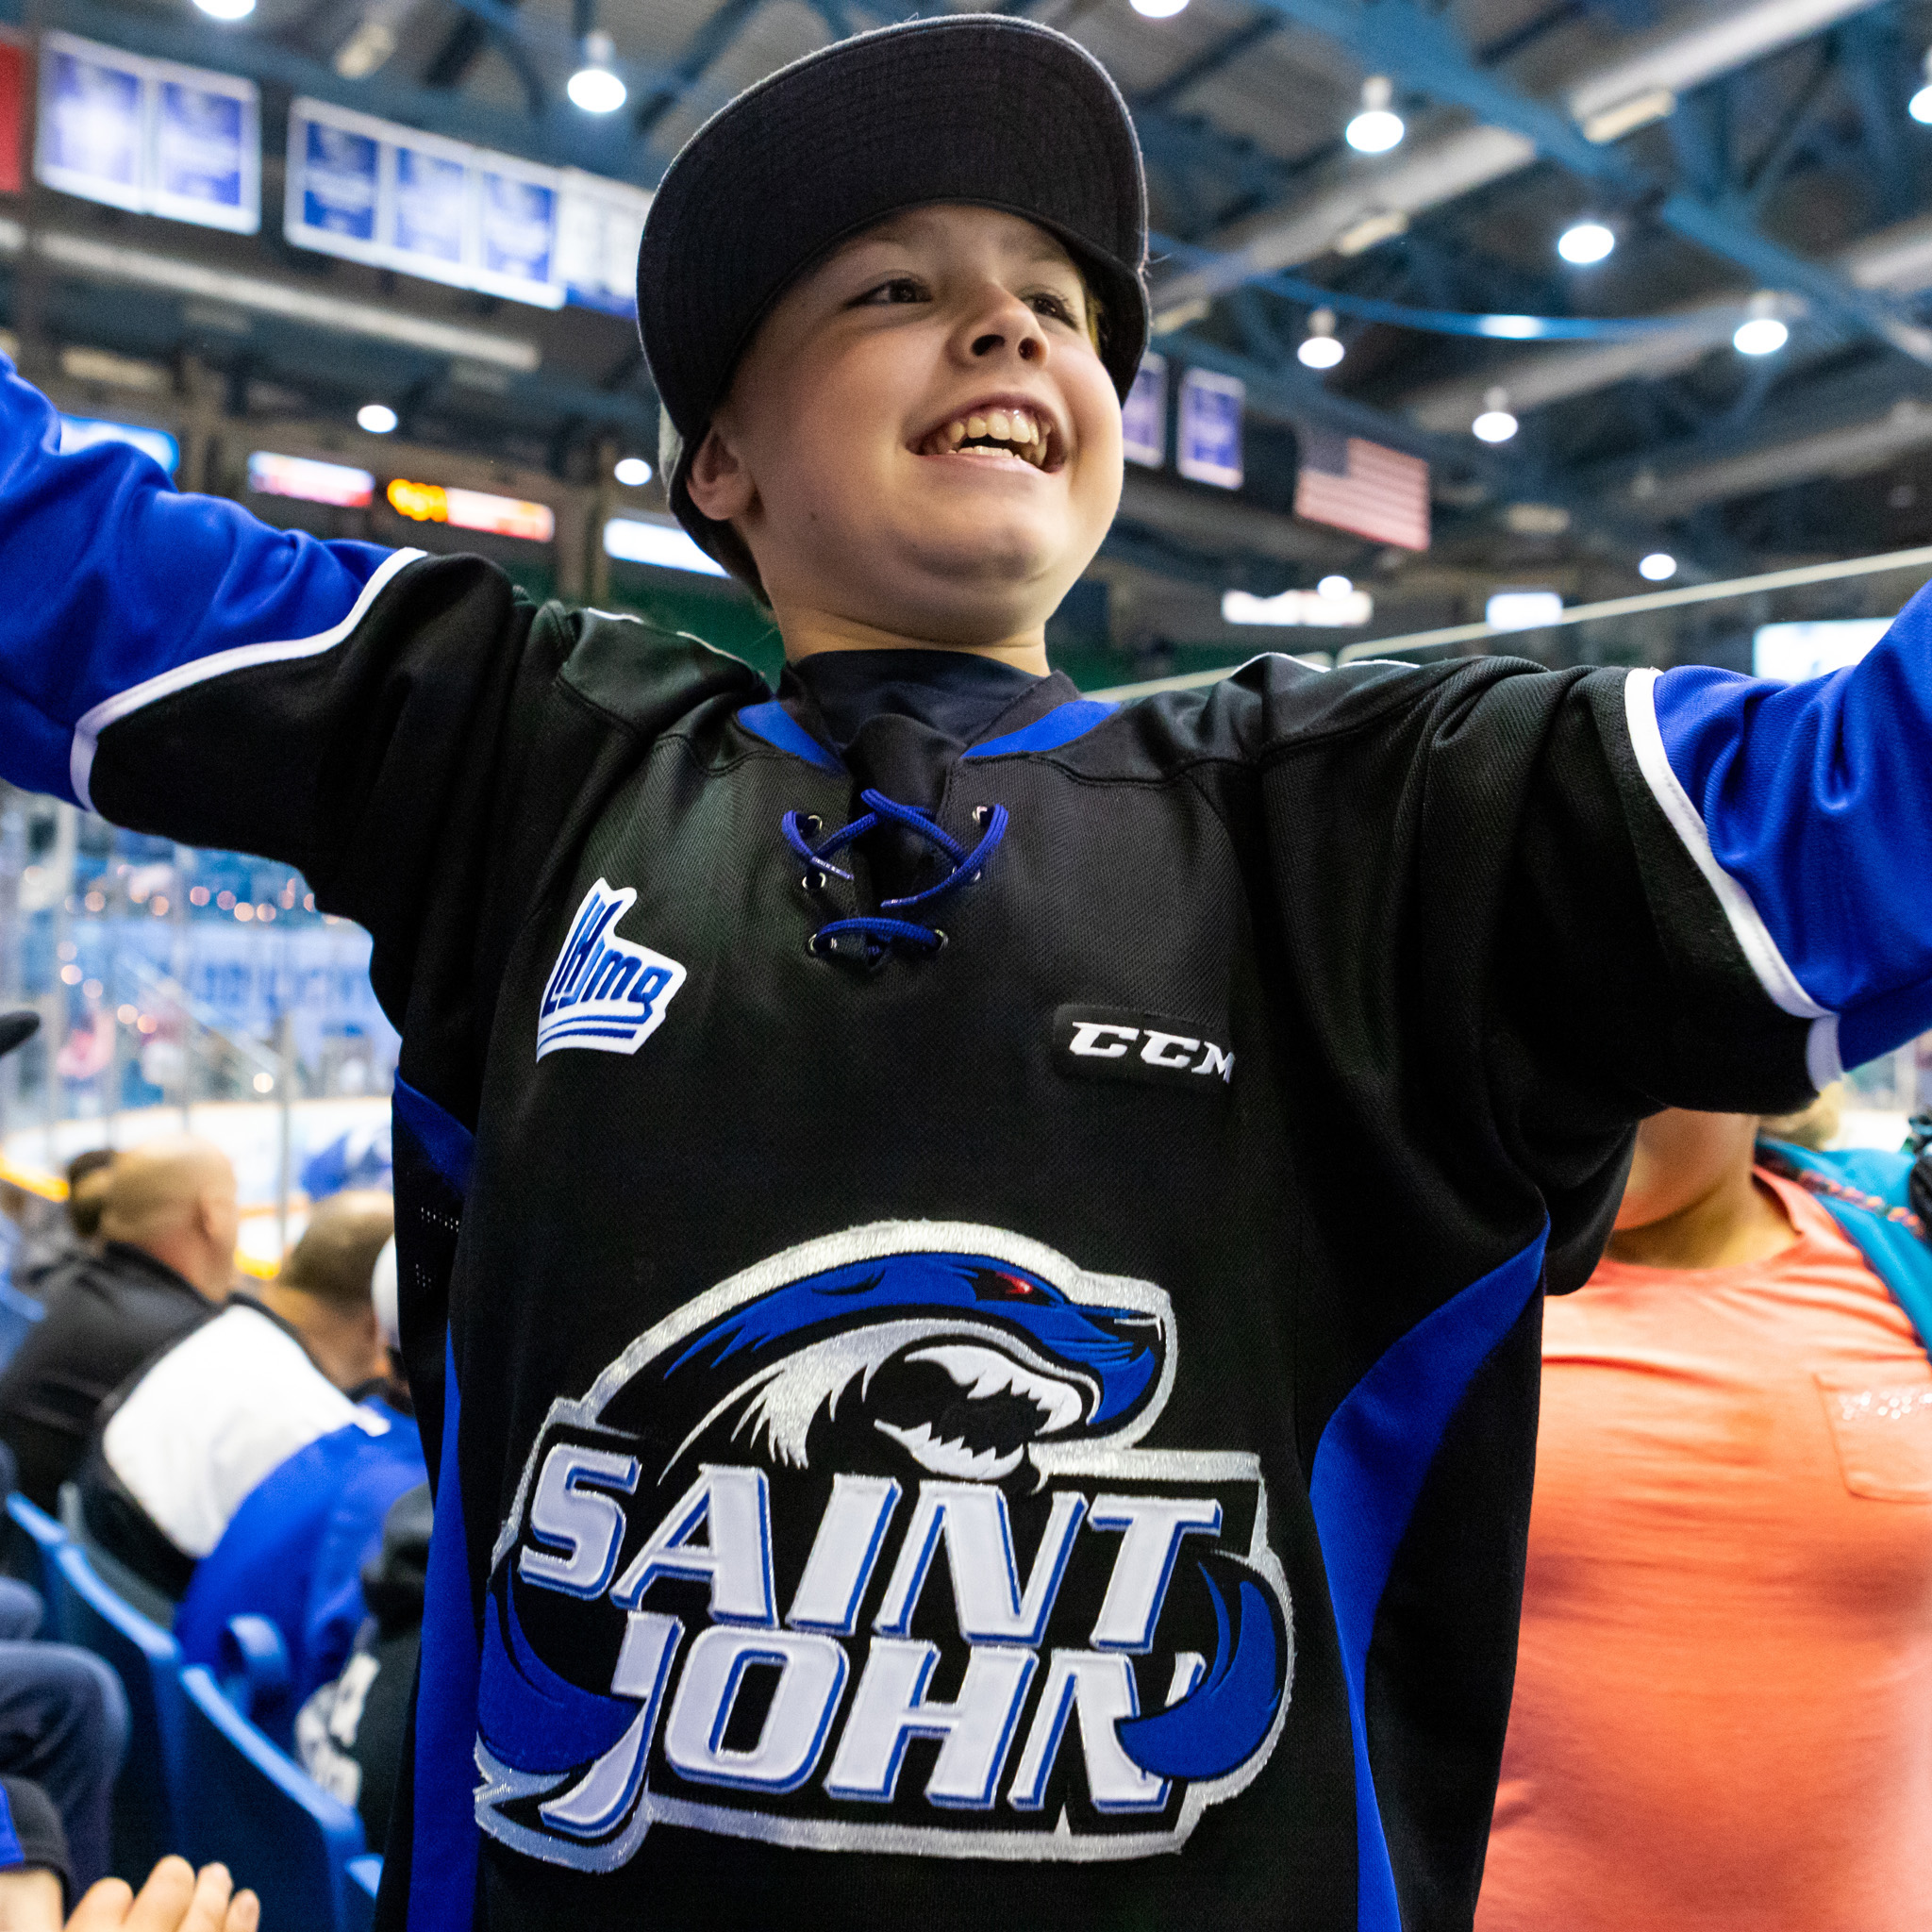 A Sea Dogs Fan Celebrates